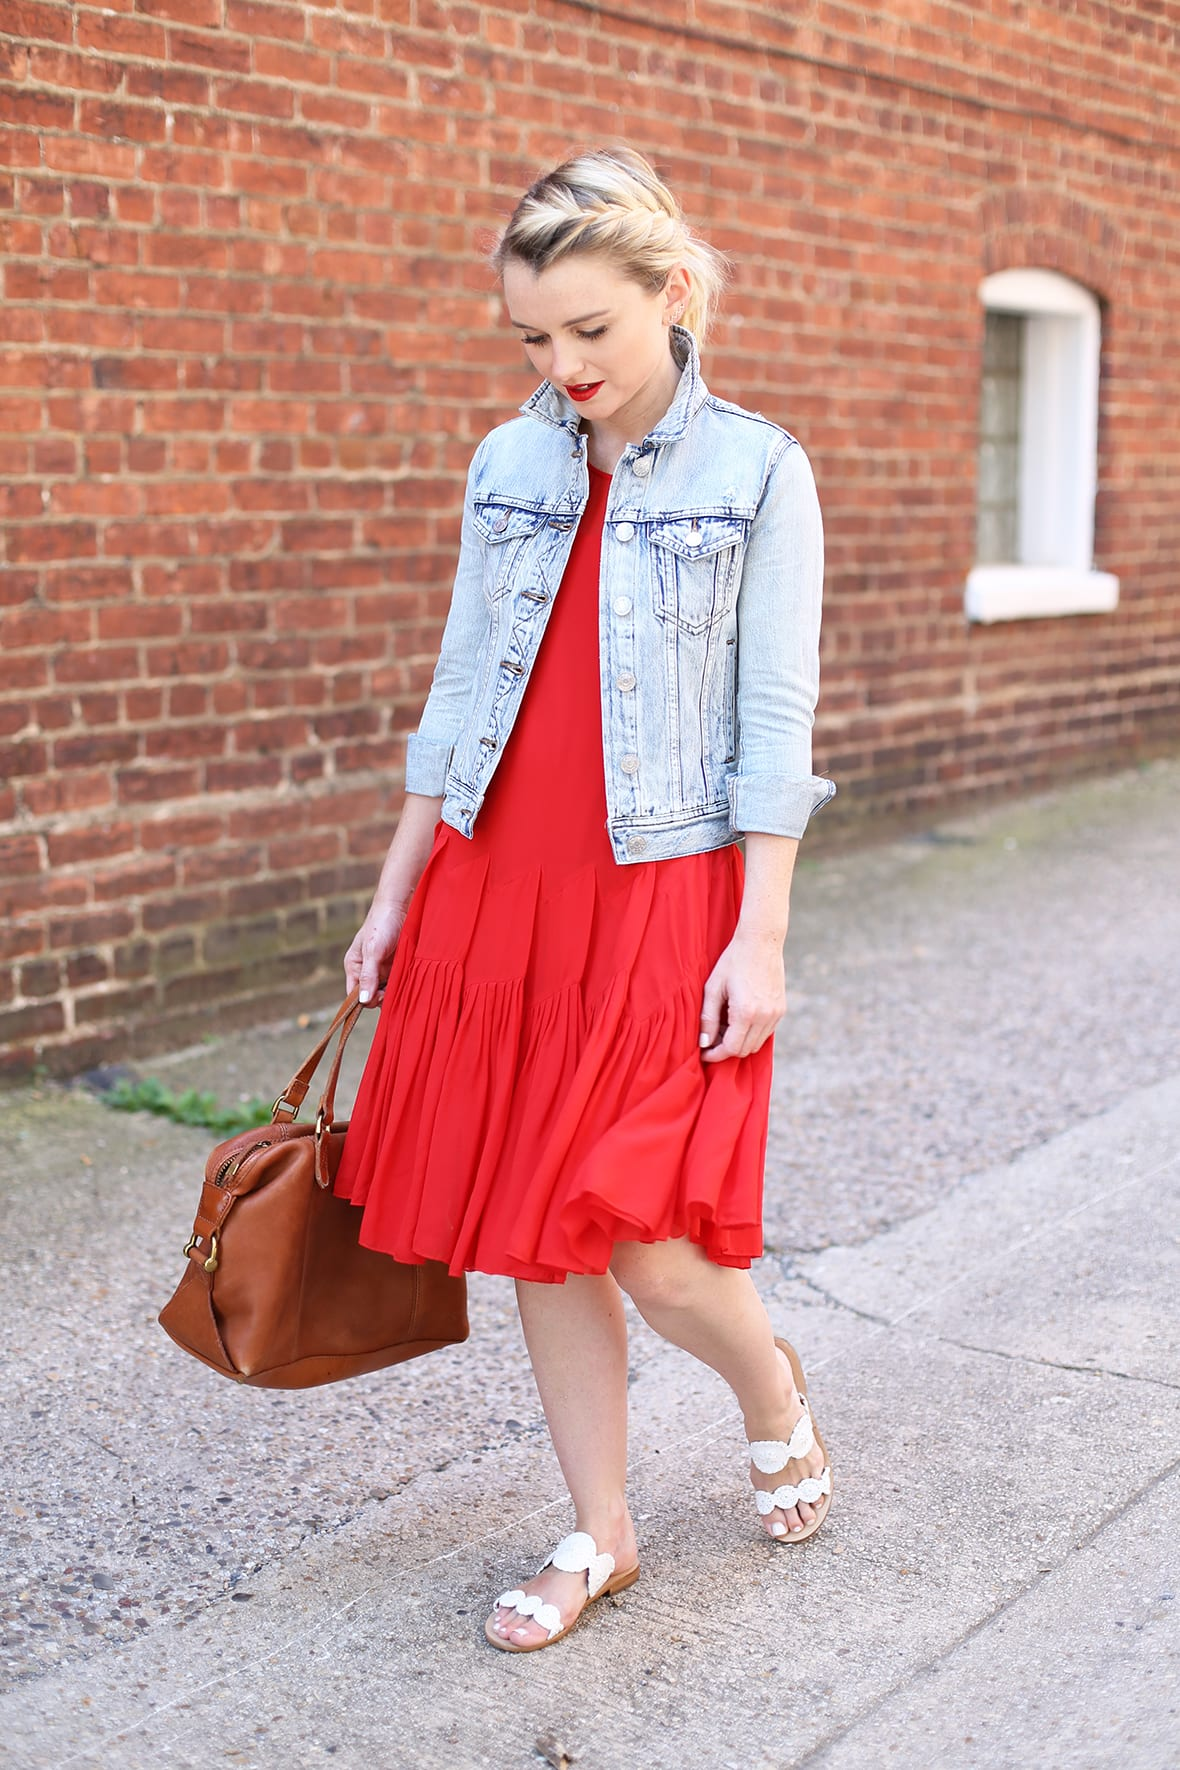 692c283a451e Red Dress And Jacket